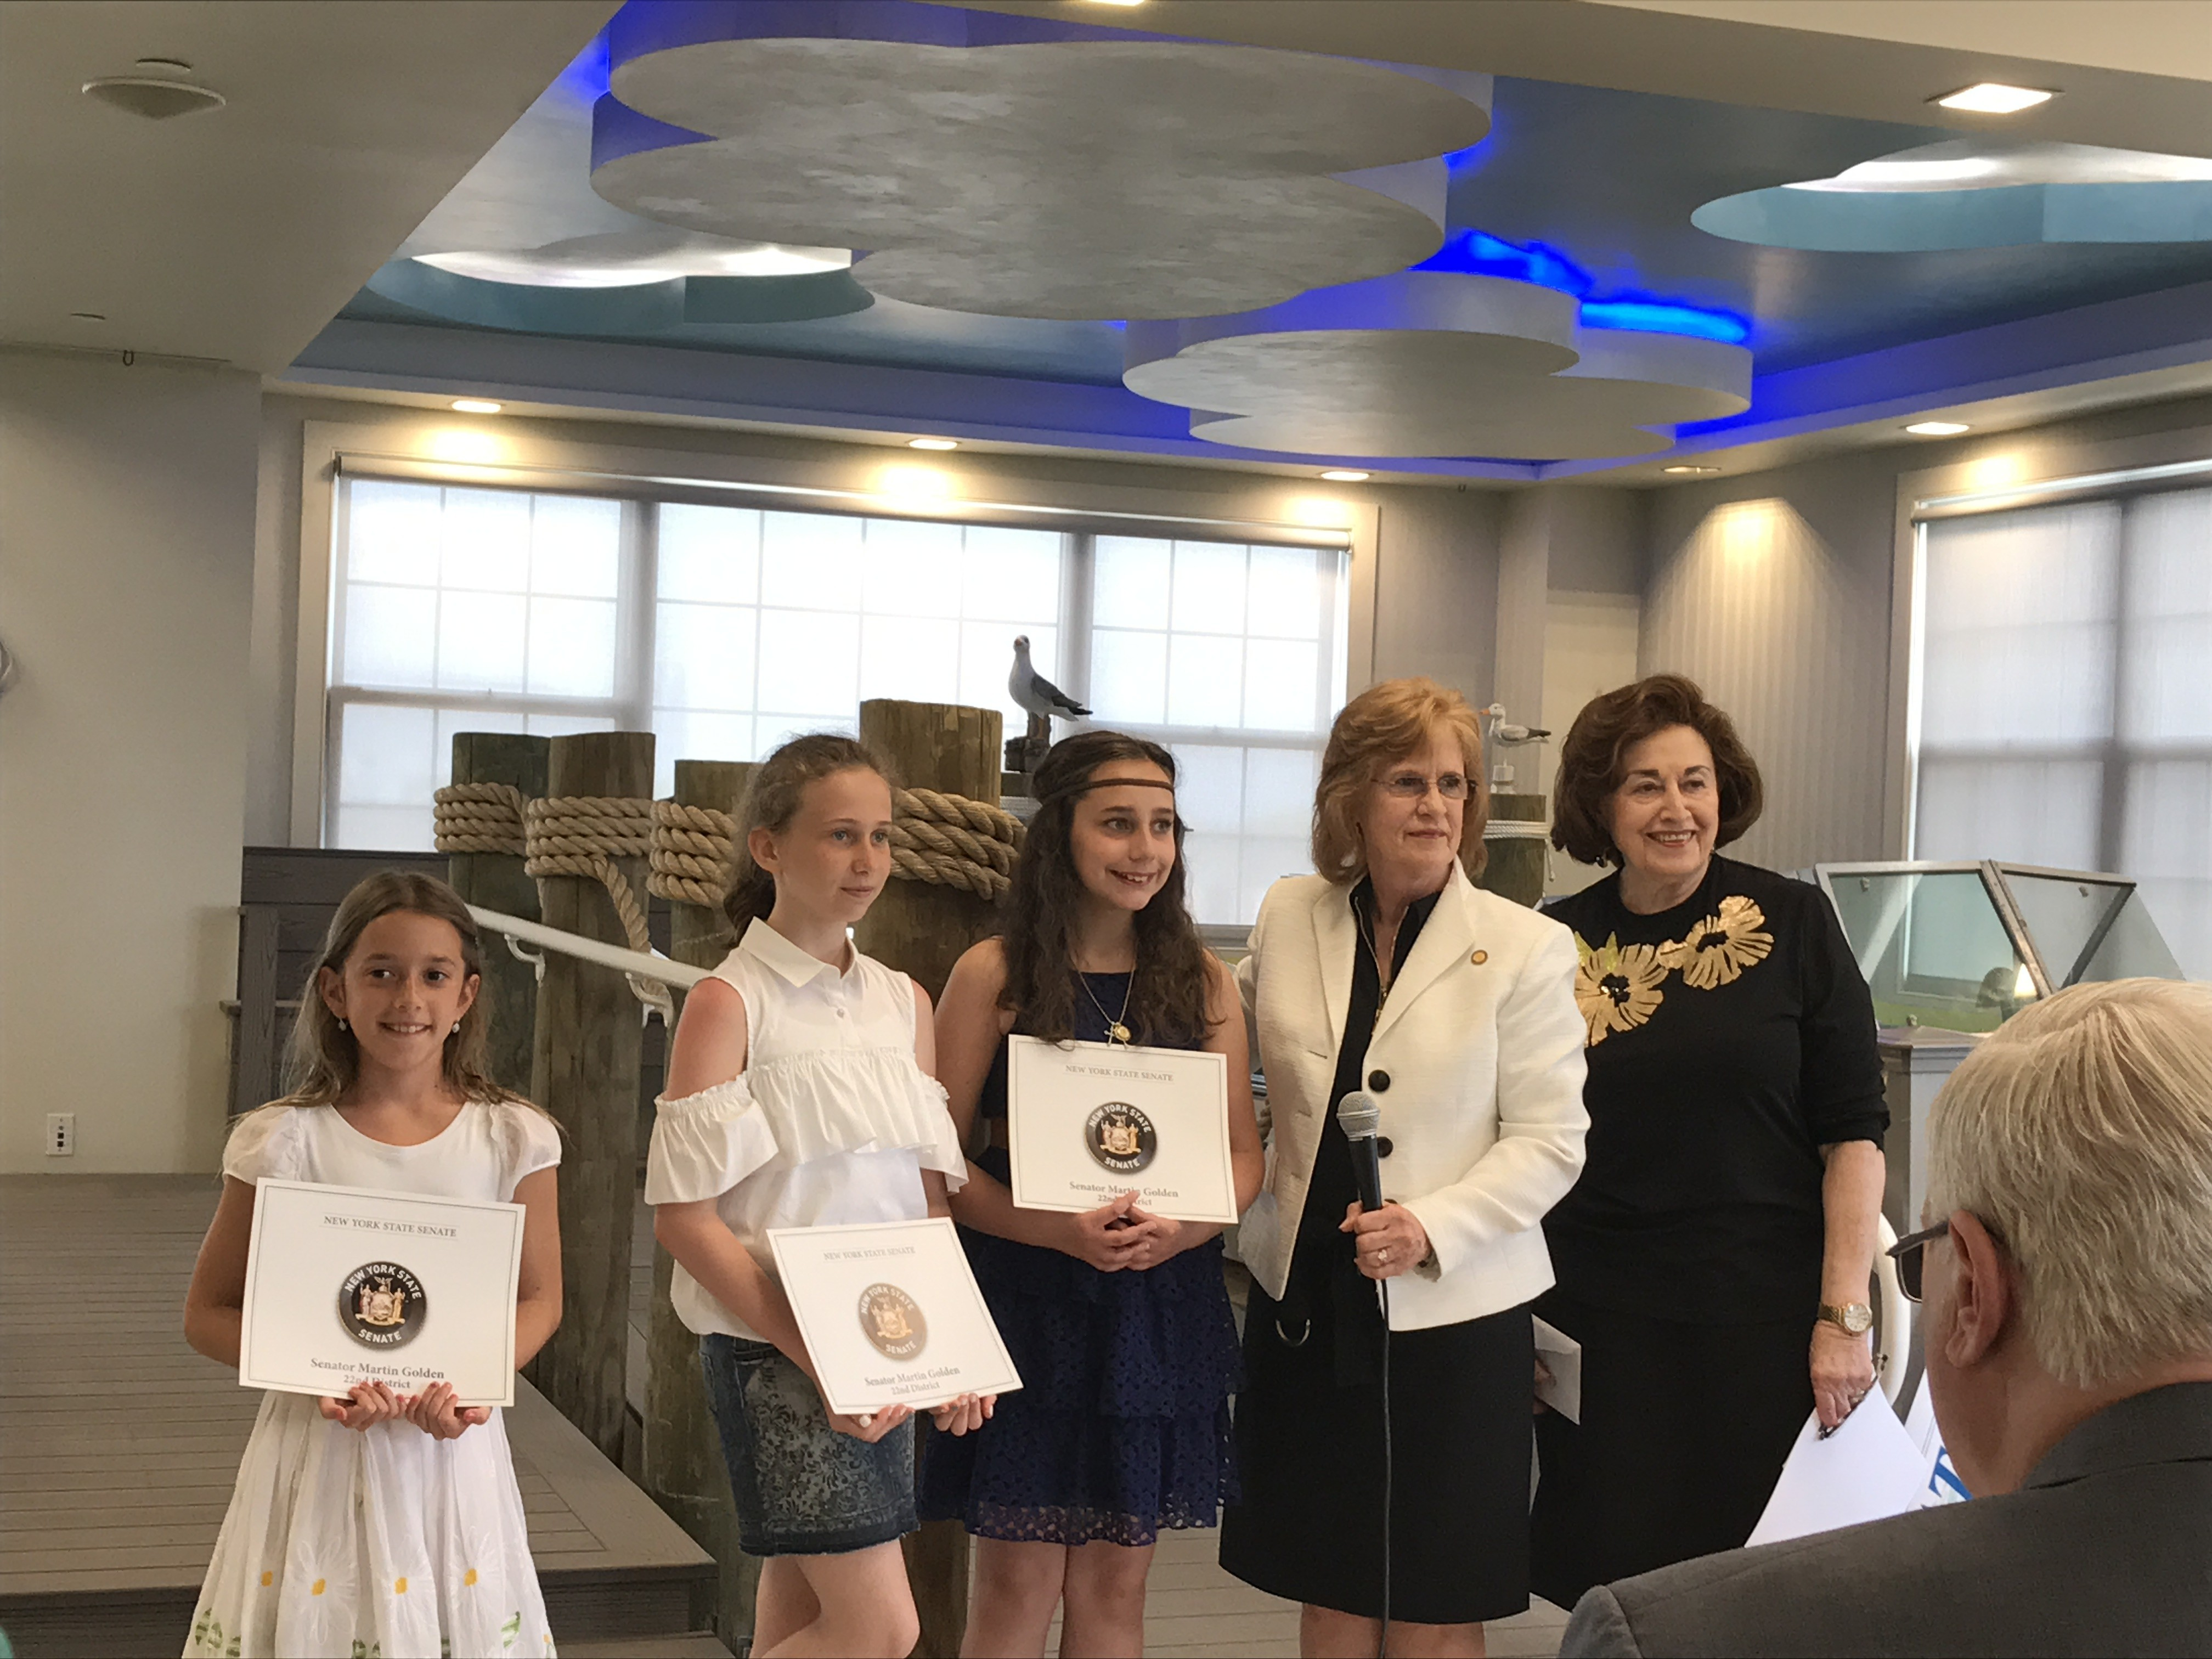 community essay awards ceremony sheepshead nursing news  essay winners joined by mrs olga lipschitz and doreen jarson community representative from senator